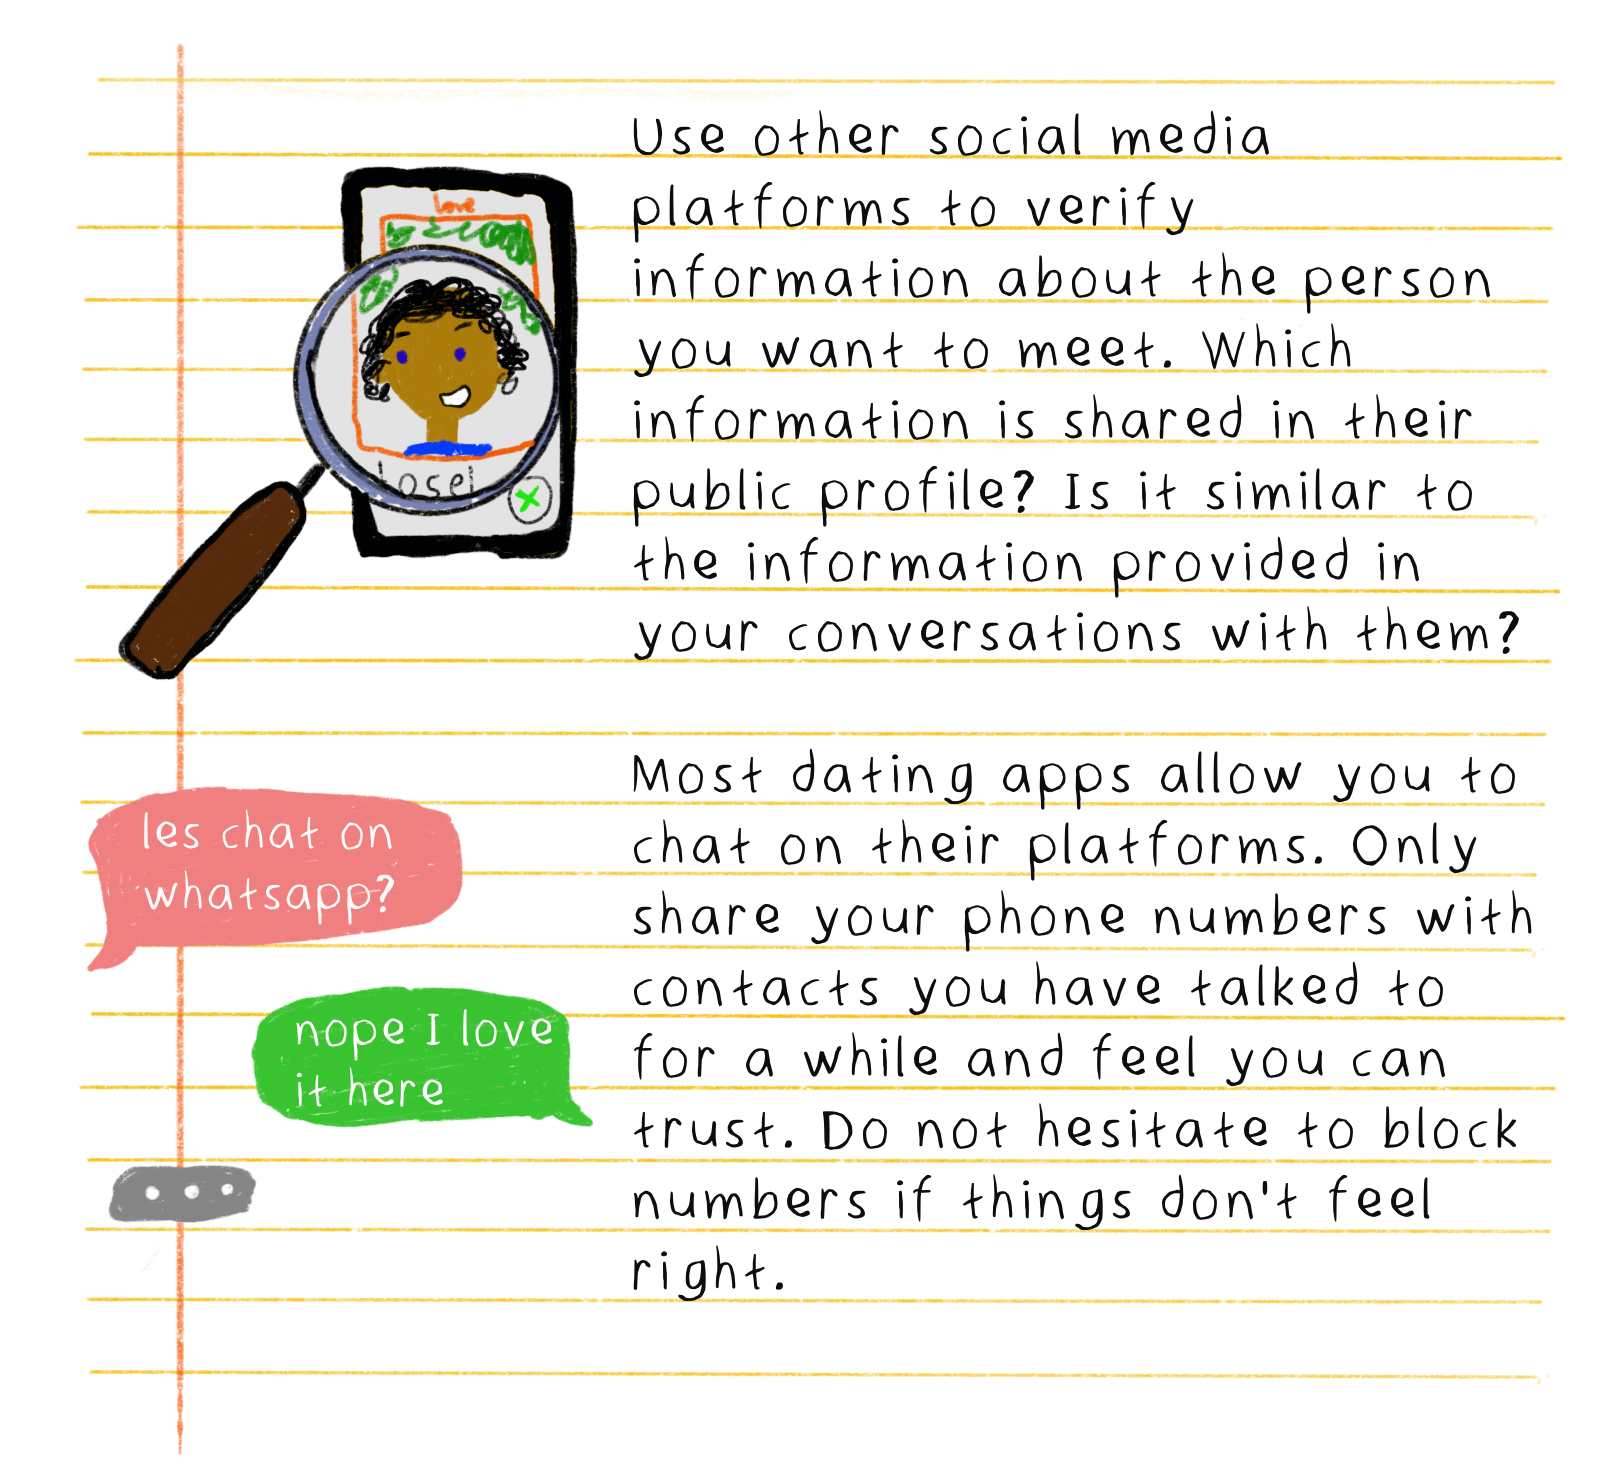 Use other social media platforms to verify information about the person you want to meet. Which information is shared in their public profile? Is it similar to the information provided in your conversations with them? Most dating apps allow you to chat on their platforms. Only share your phone numbers with contacts you have talked to for a while and feel you can trust. Do not hesitate to block numbers if things don't feel right.